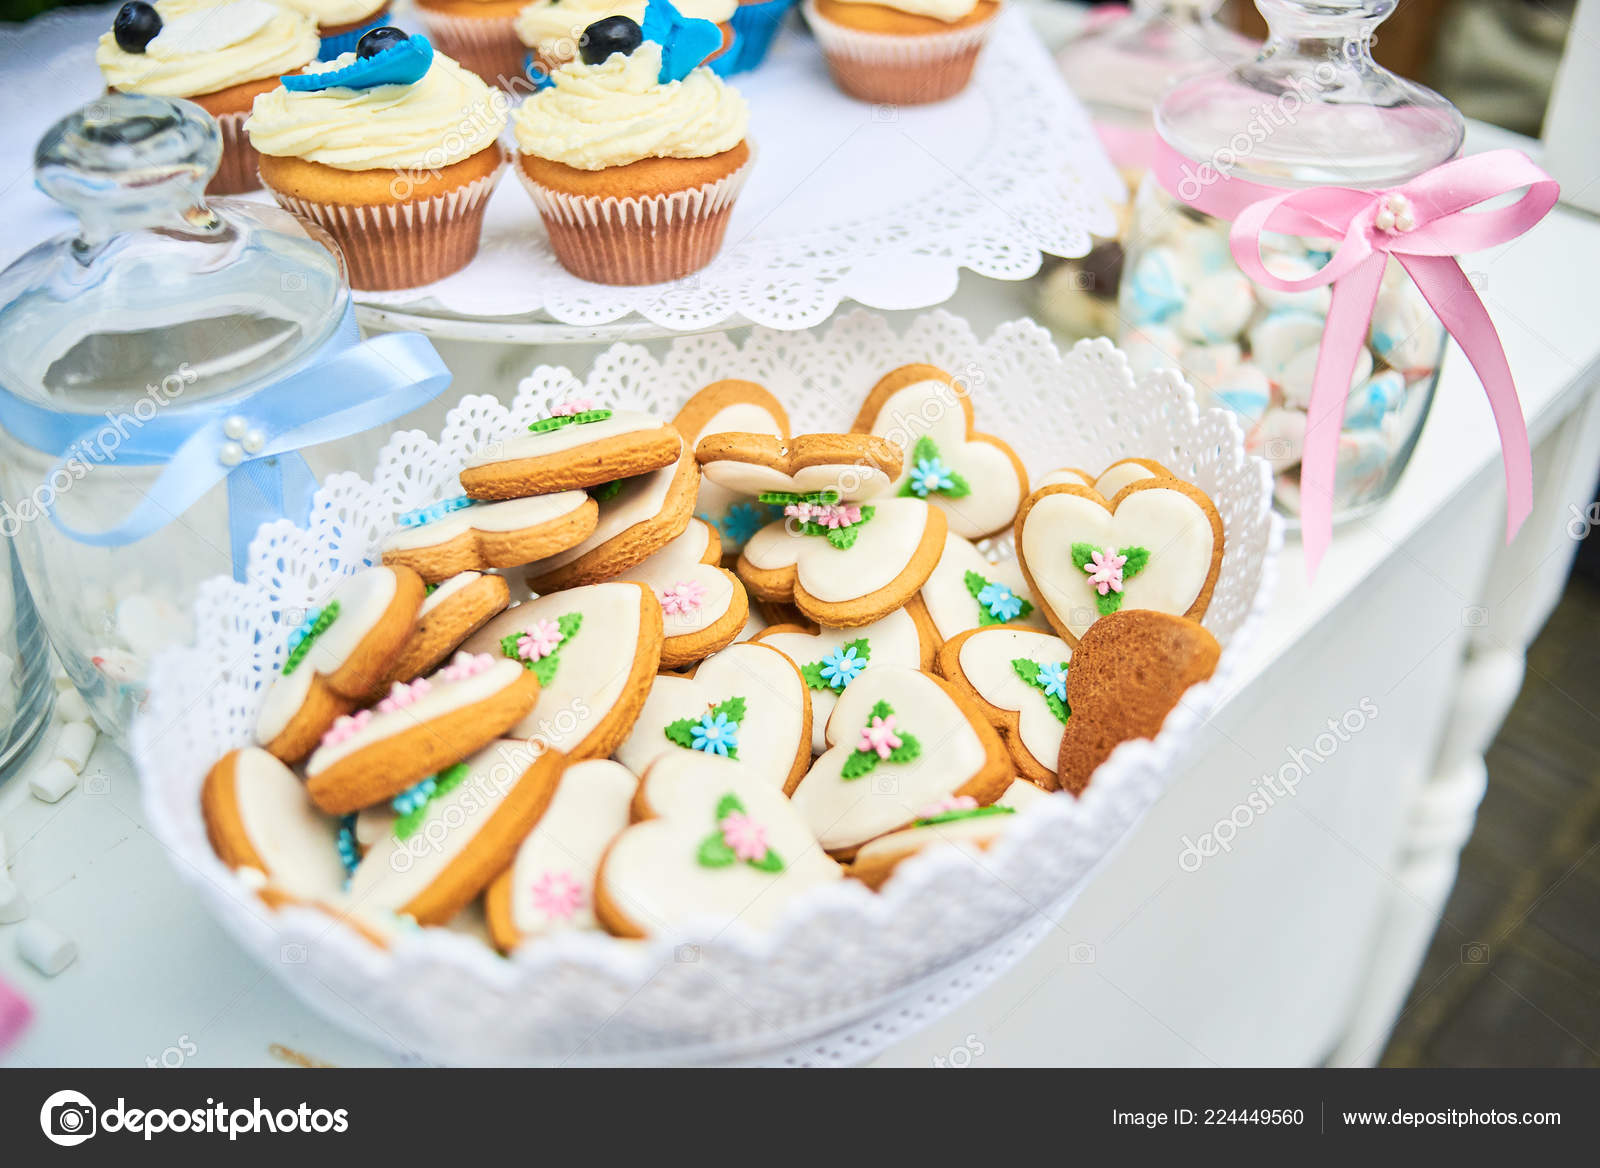 Candy Bar White Wedding Cakes Festive Table Desserts Cupcakes